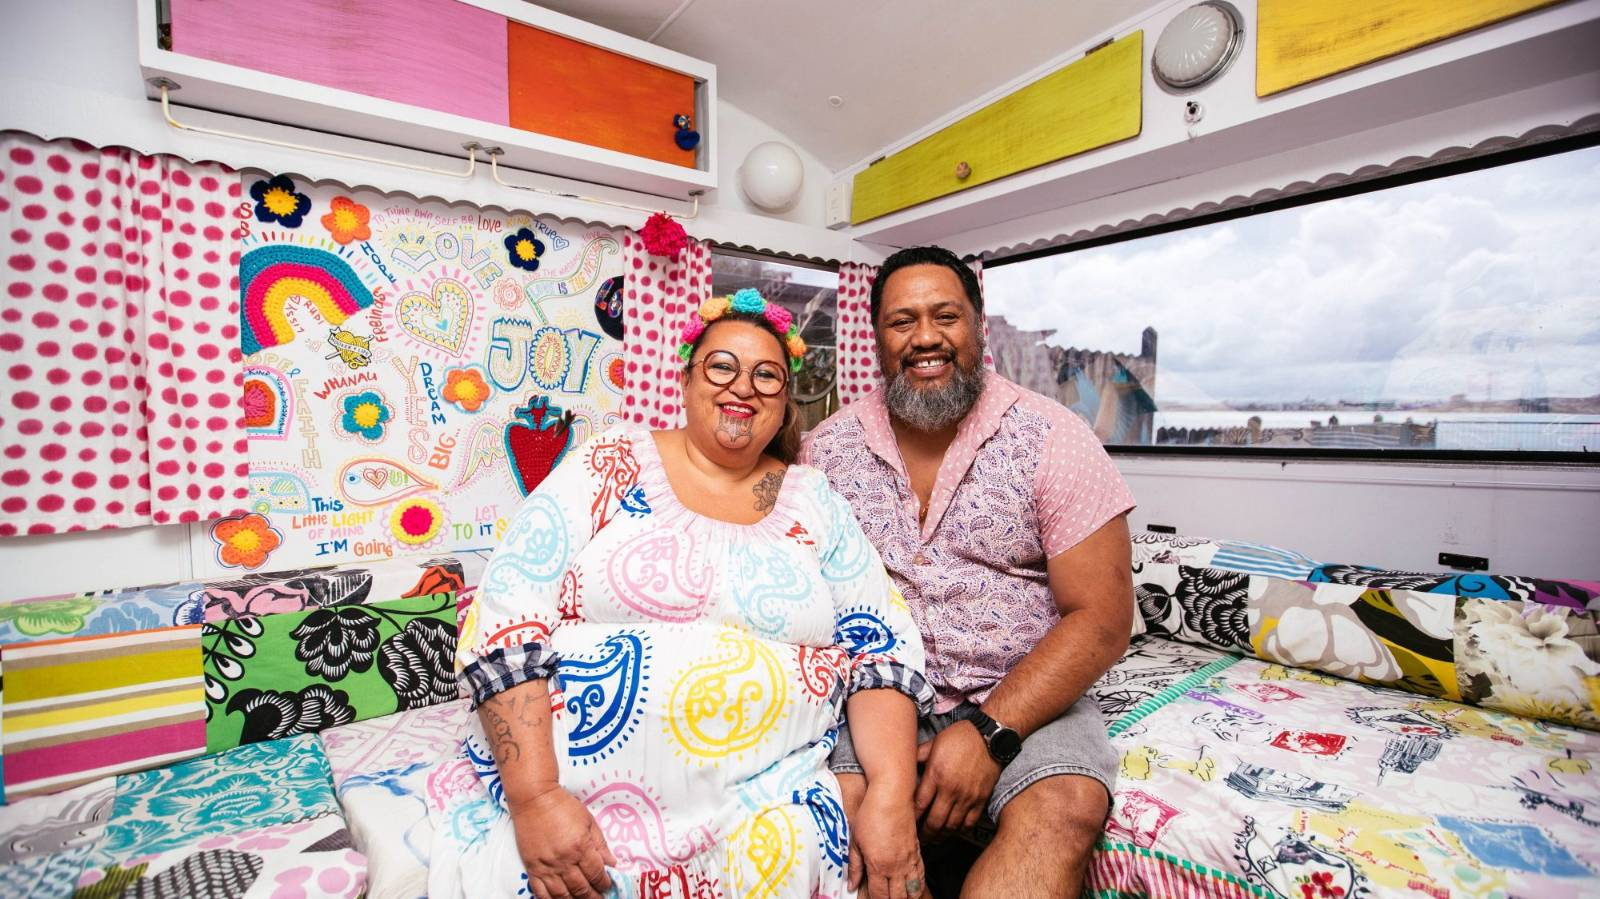 The couple building a house of joy from day-glo crochet